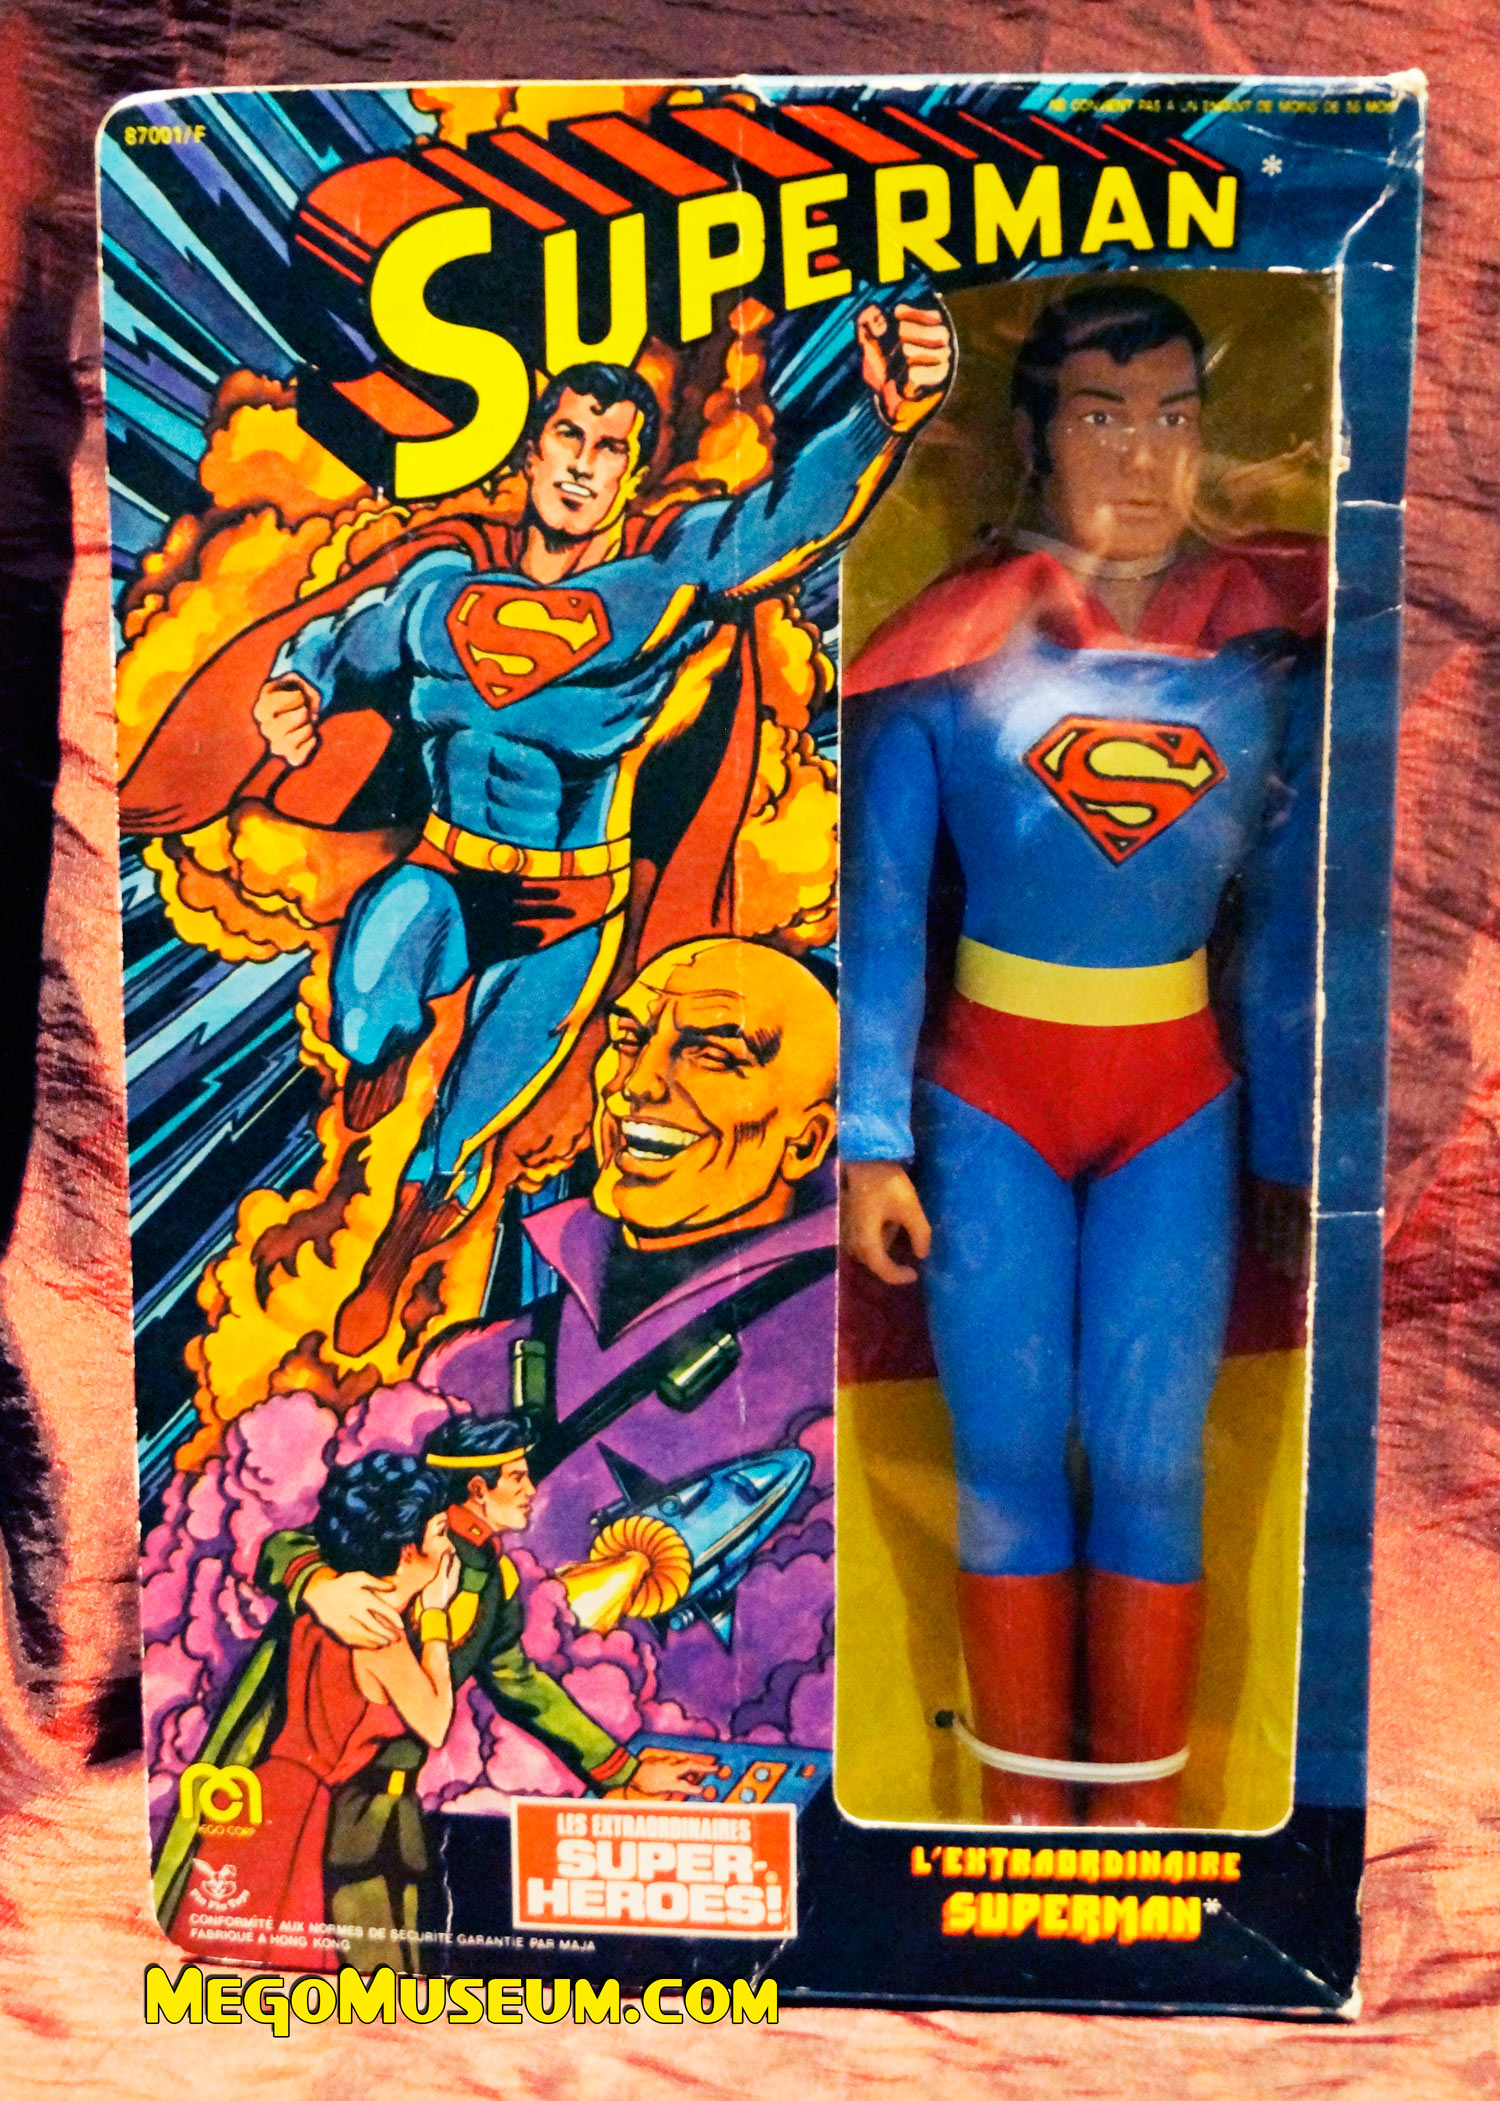 Mego Pin Pin Superman from France.